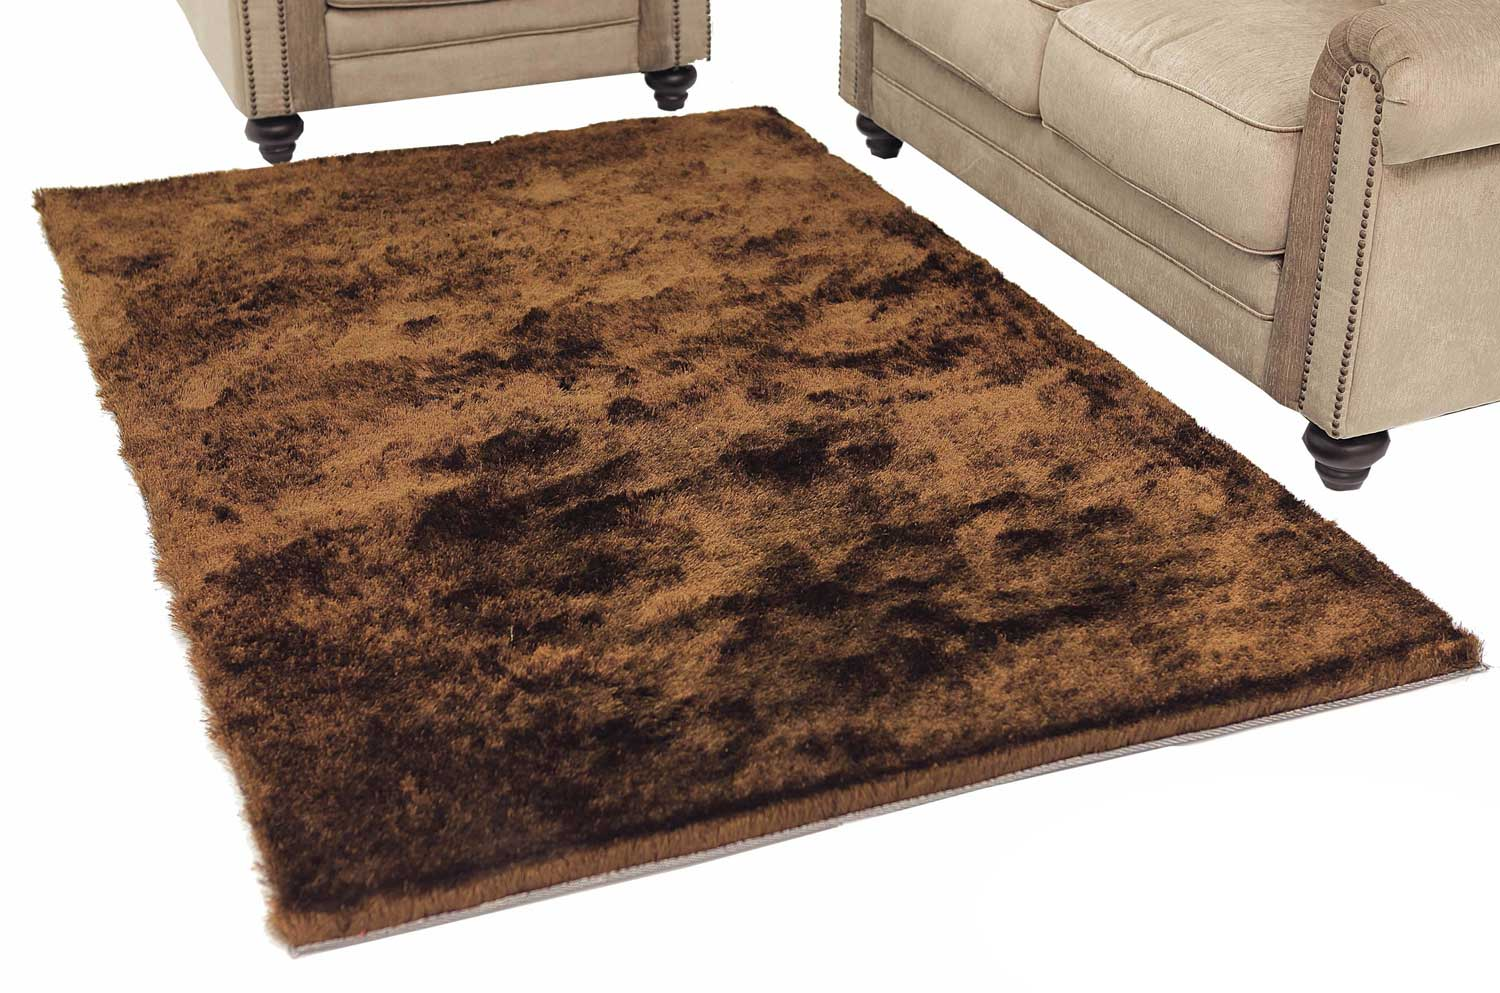 Abbyson Living AR-YS-TS012 Shag Rug 8 x 10-Feet - Multi Tone Brown